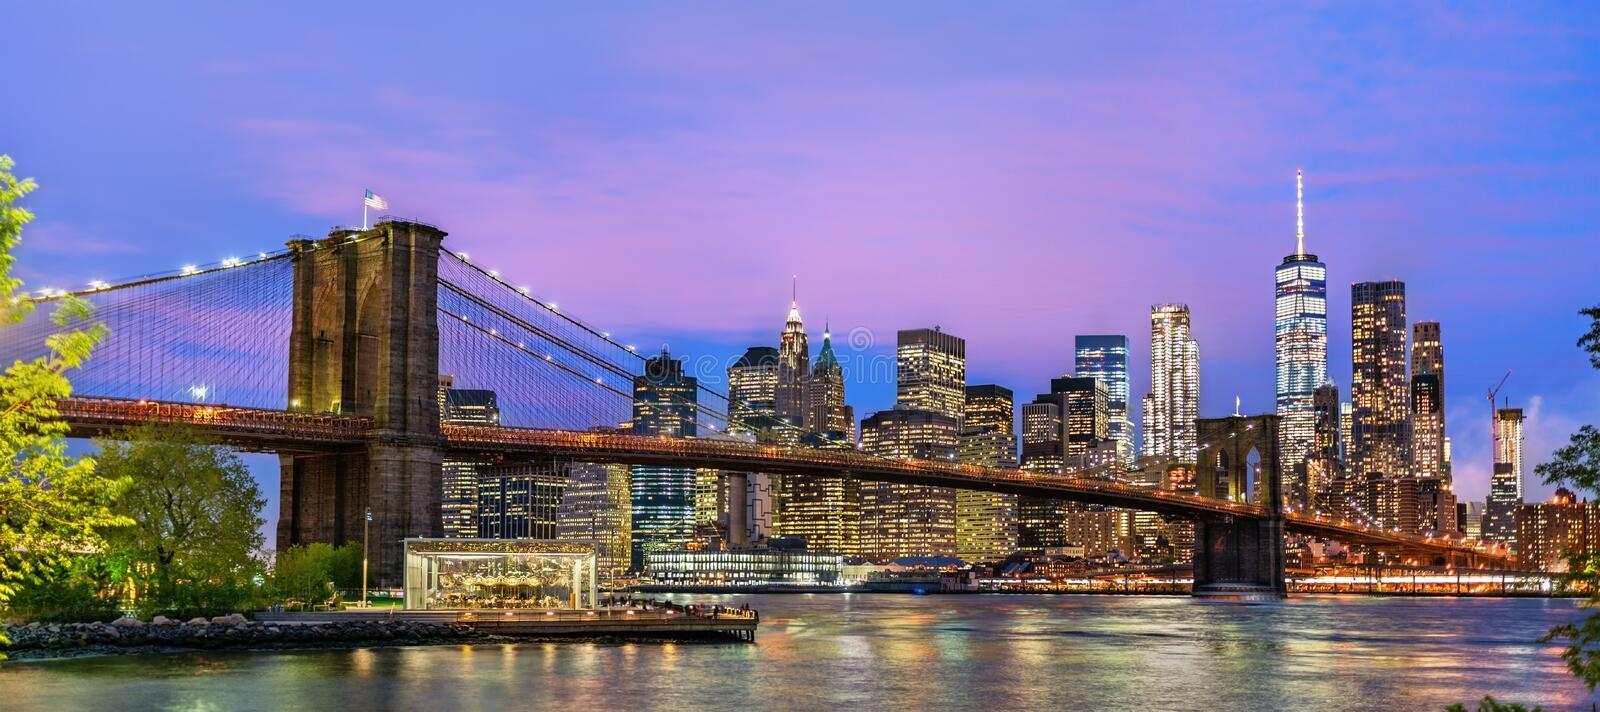 Brooklyn Bridge and Manhattan at sunset - New York, USA royalty free stock image